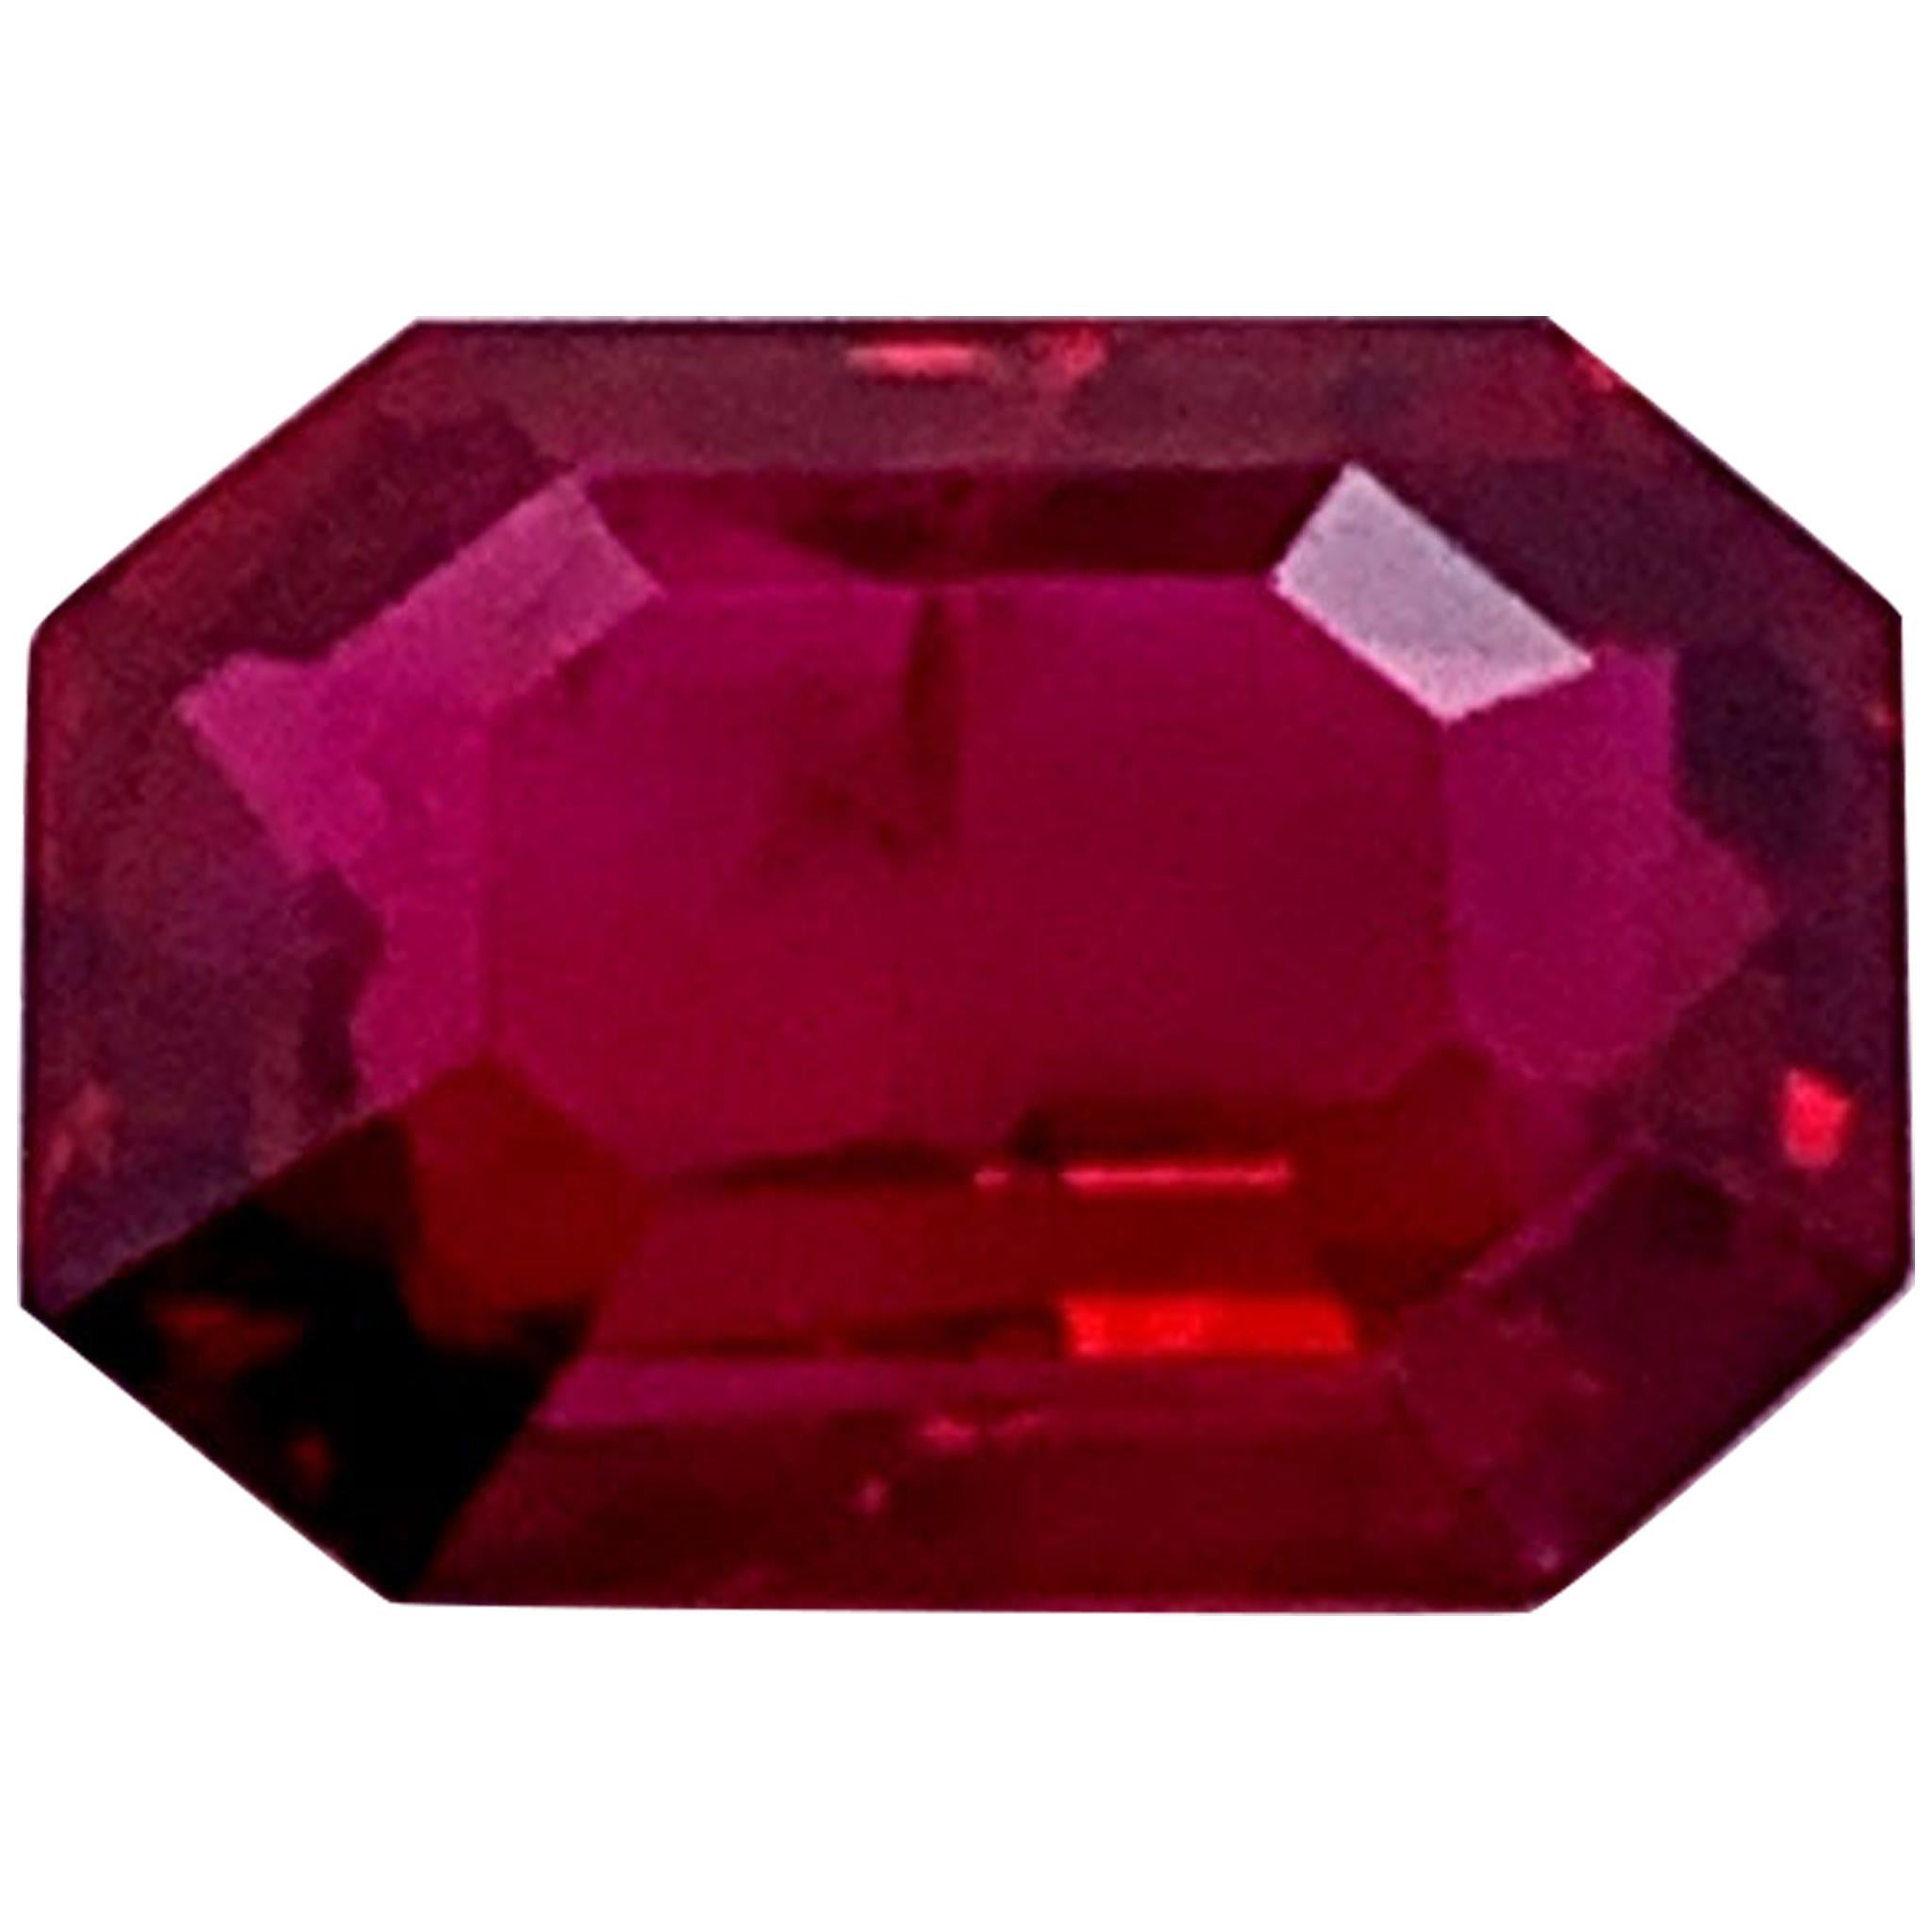 Mozambique Natural Ruby Pigeon Blood 5.38 Carat